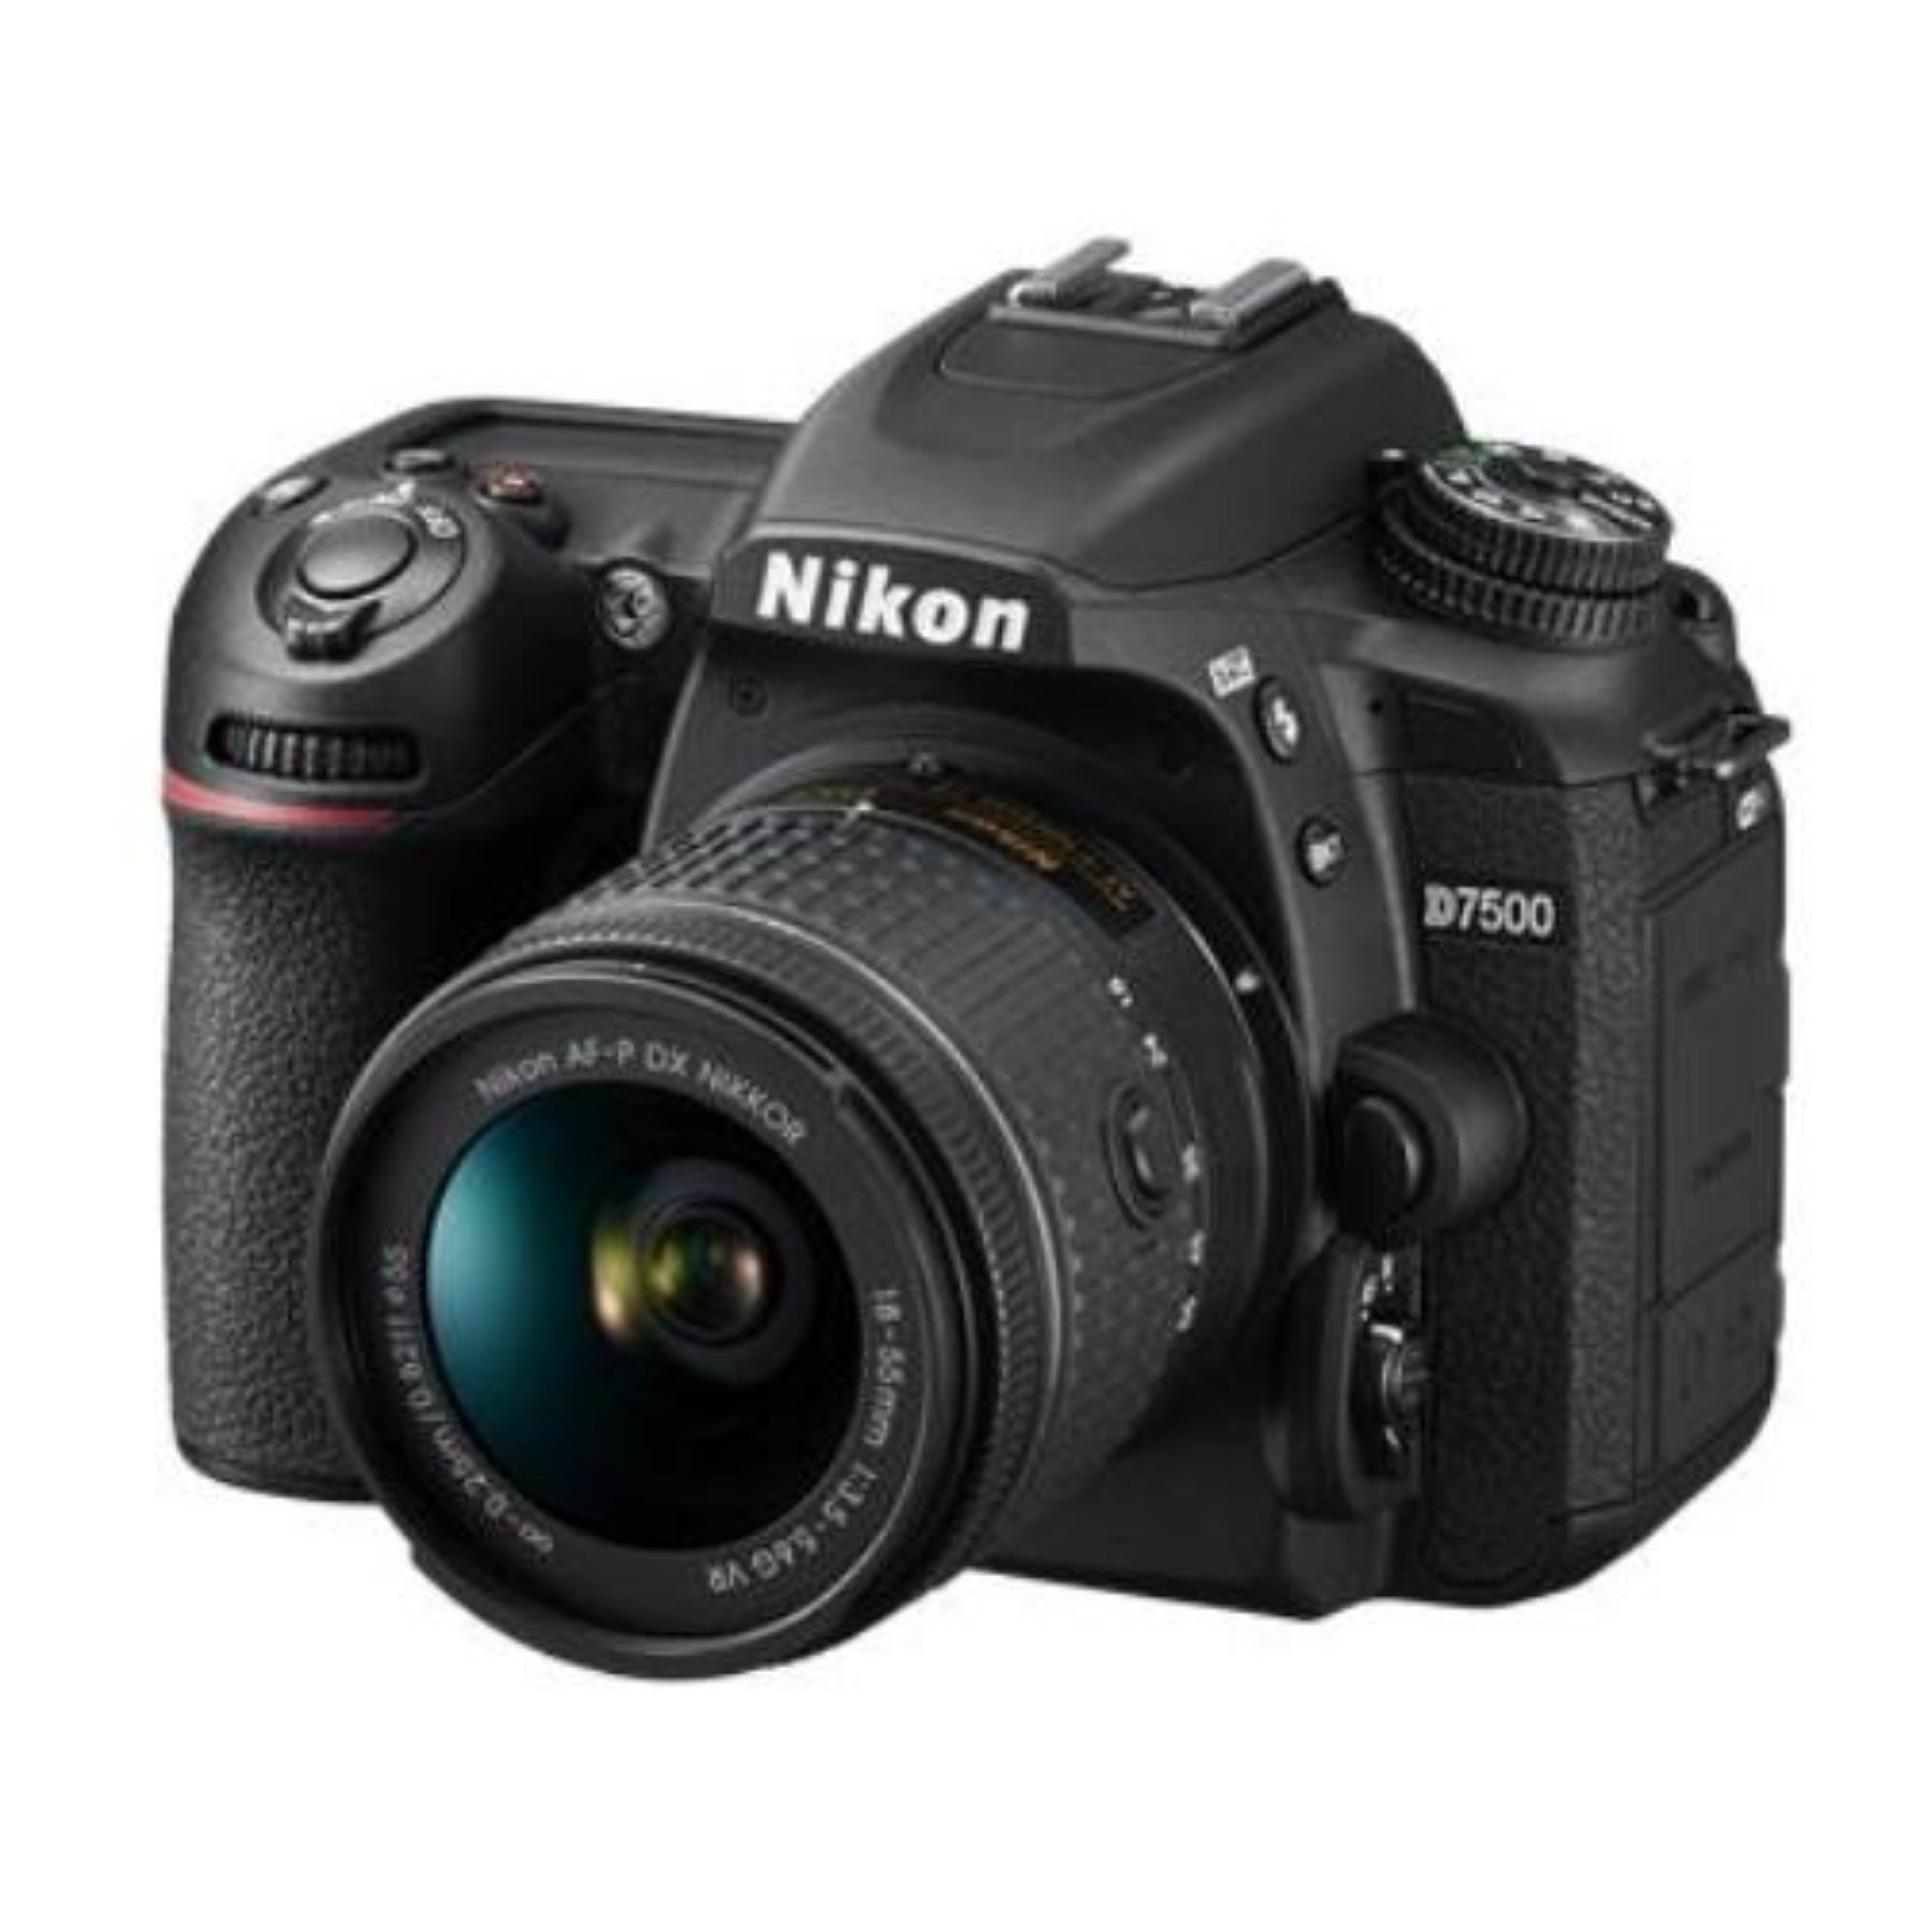 (Local) Nikon D7500 DSLR Camera with 18-55mm Lens + Cleaning Kit + Nikon Promotion (please note that price is after cashback)